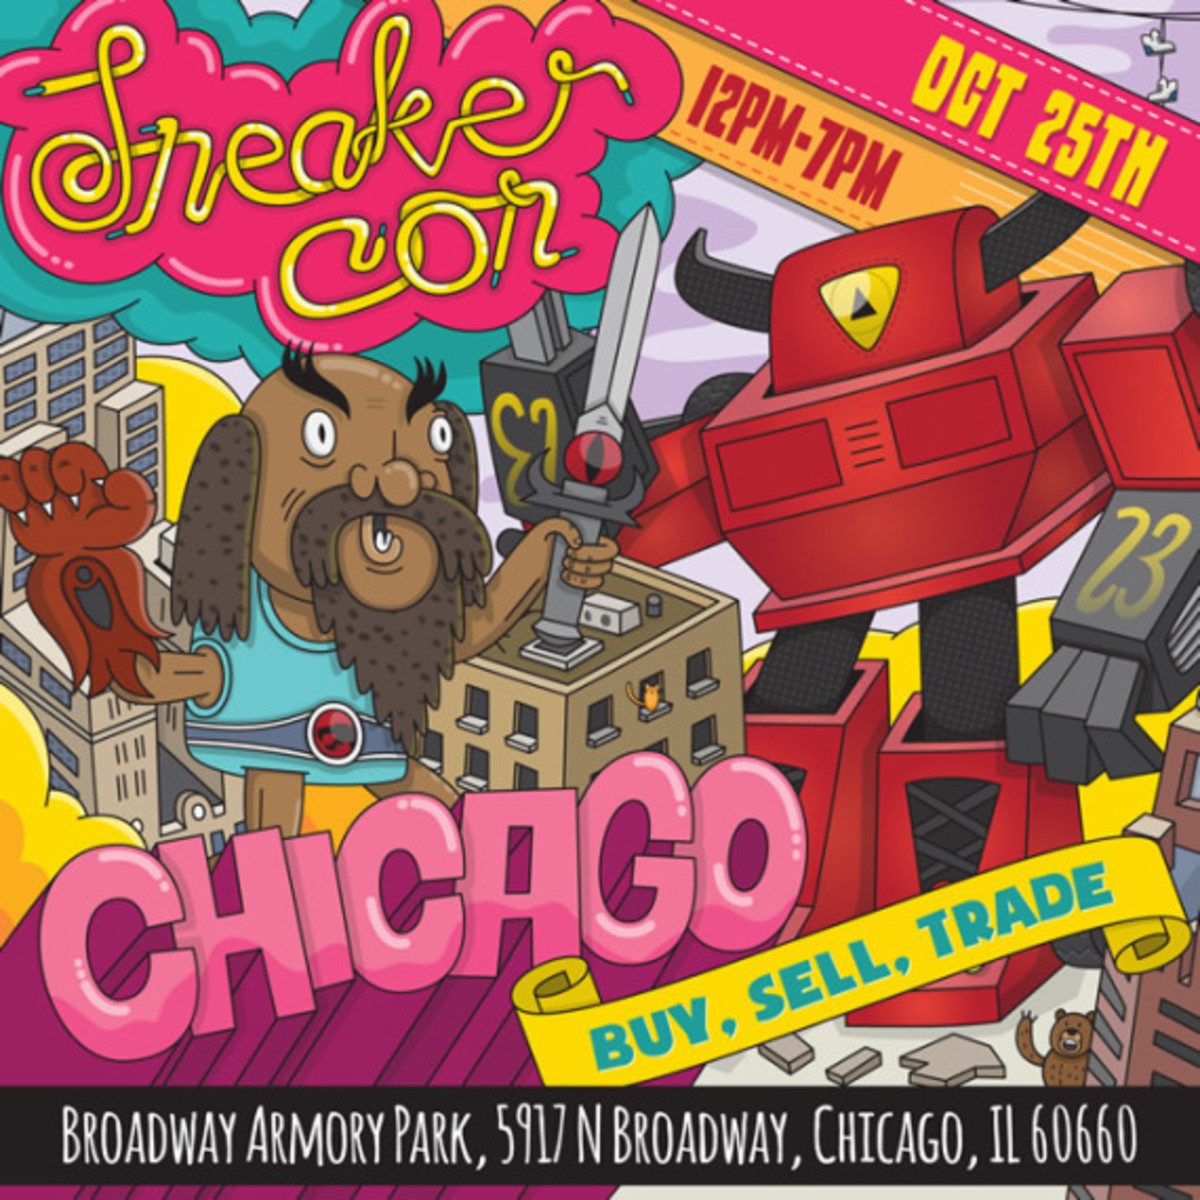 Sneaker Con Chicago – October 25th, 2014 | Event Reminder - 0